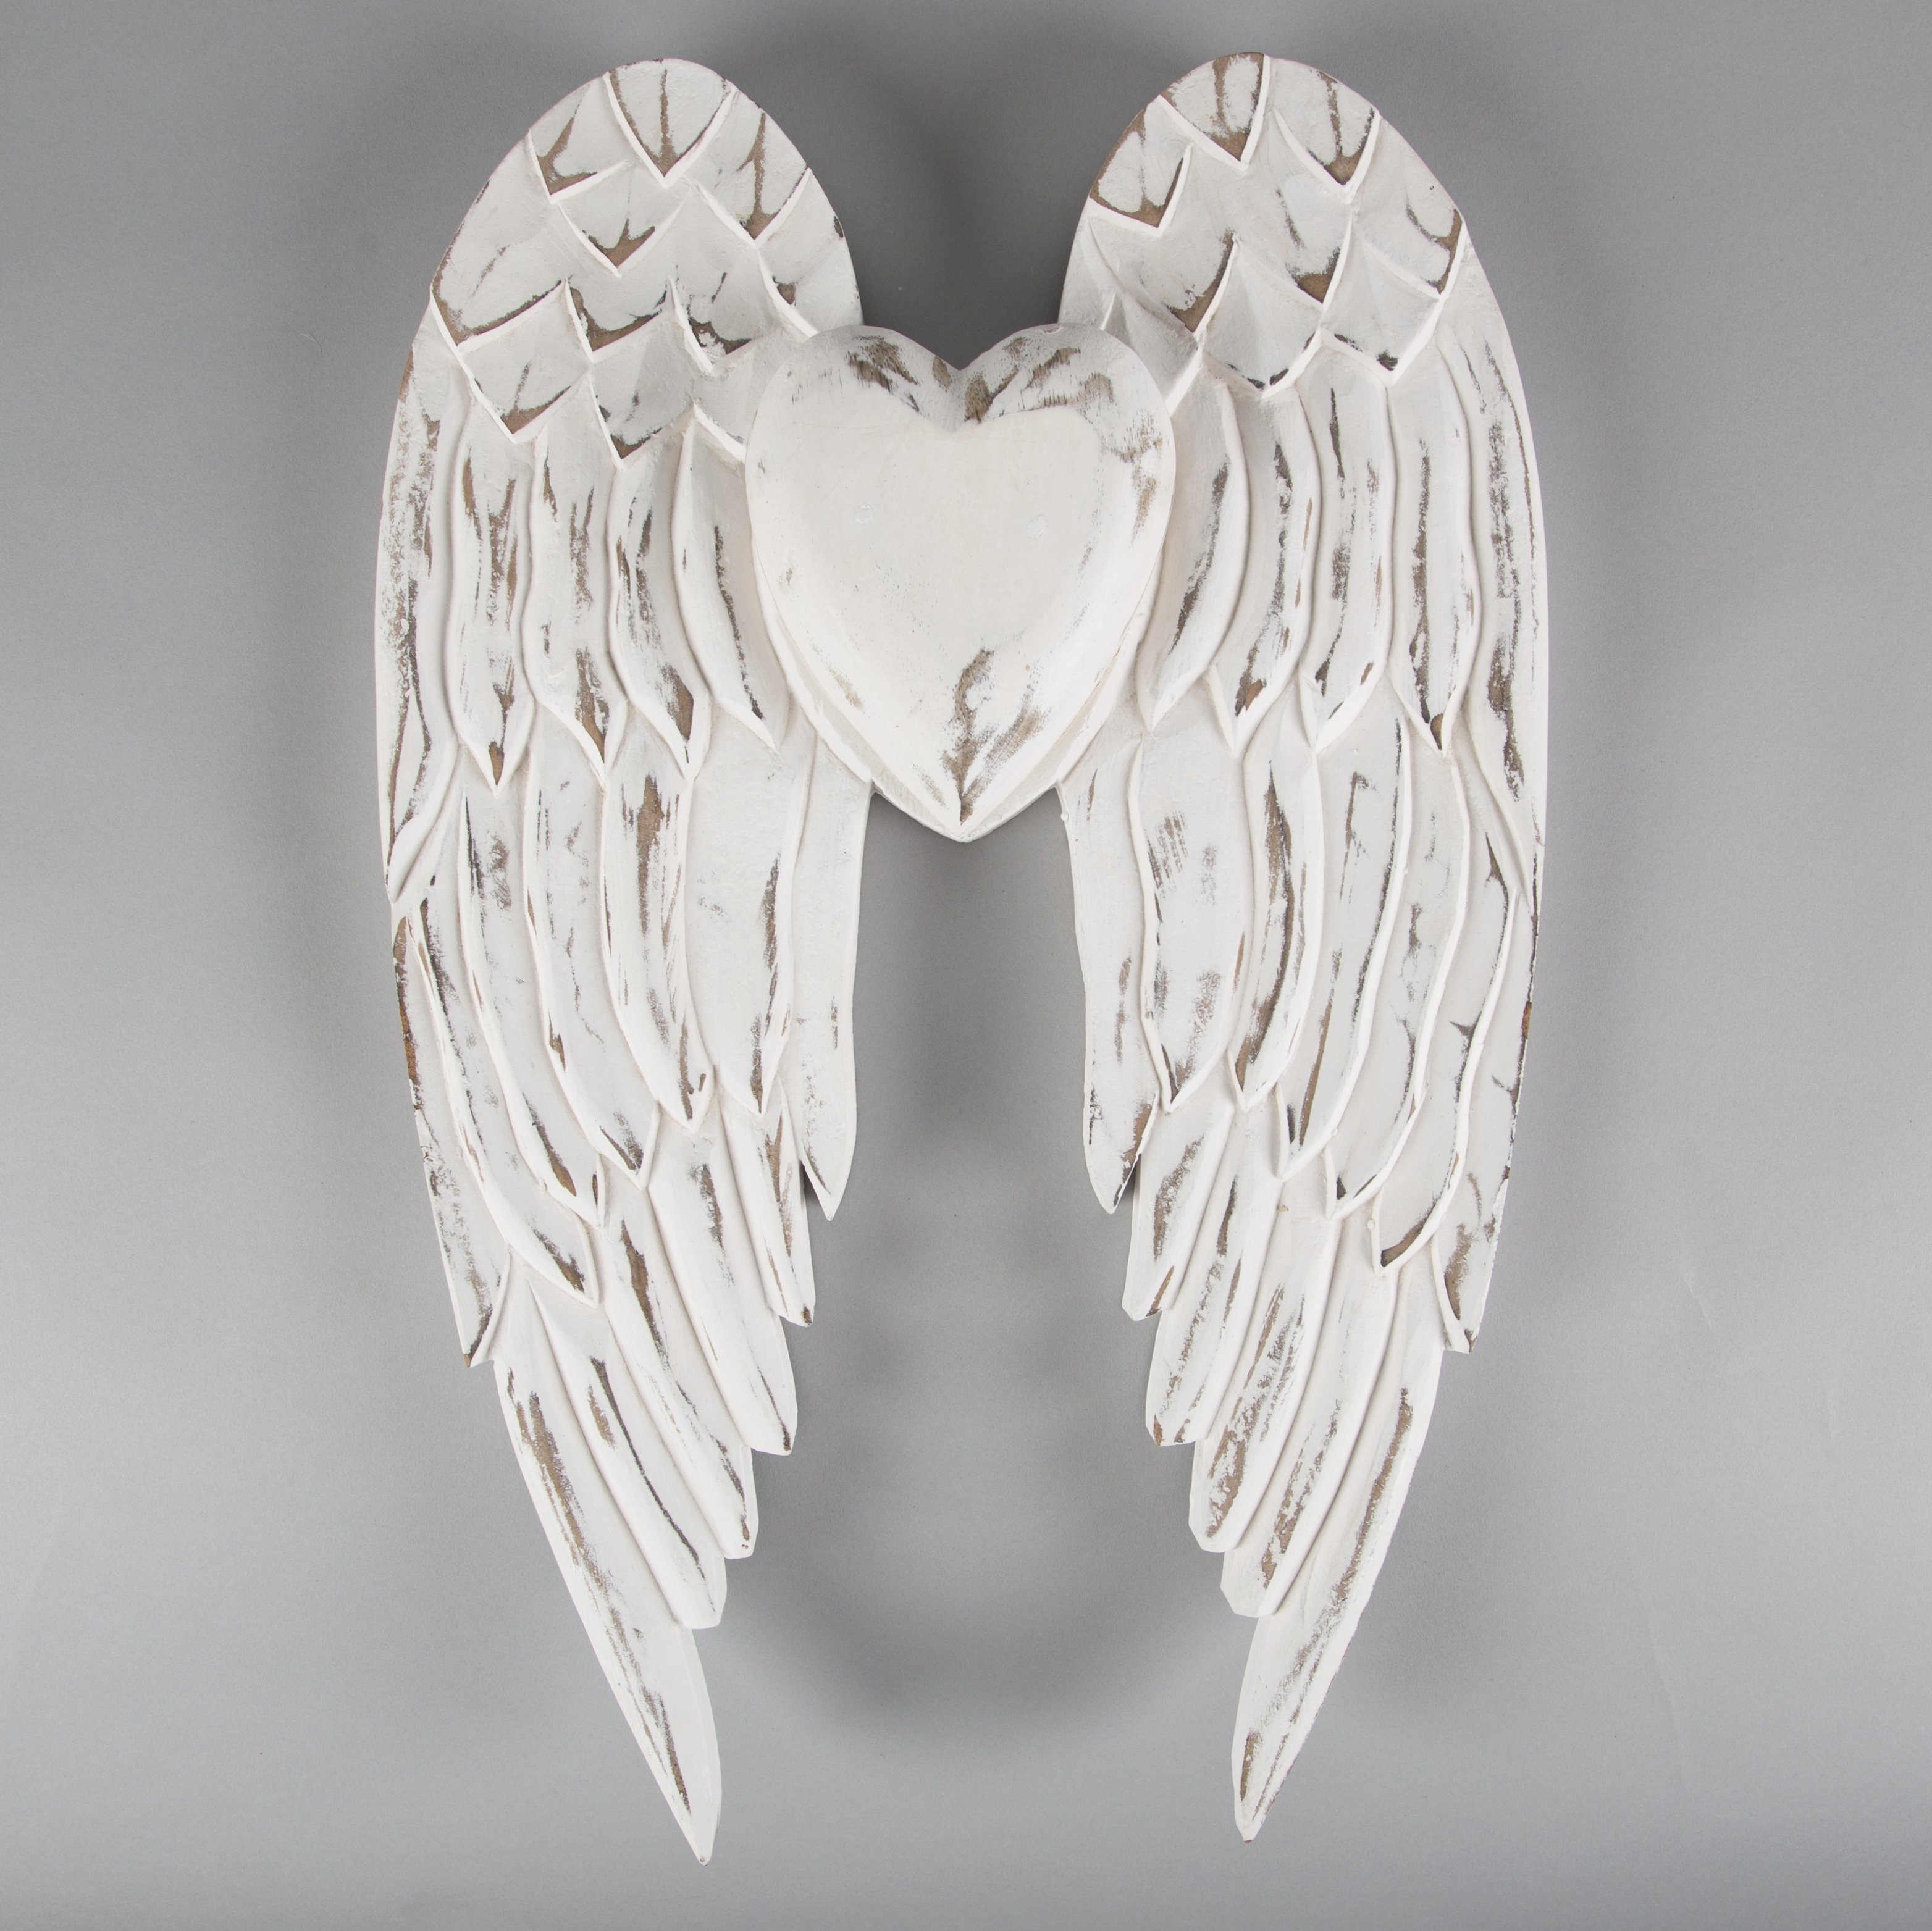 Details about Large White Wooden Angel Wings Heart Rustic Wall Hanging Home  Decor 11cm